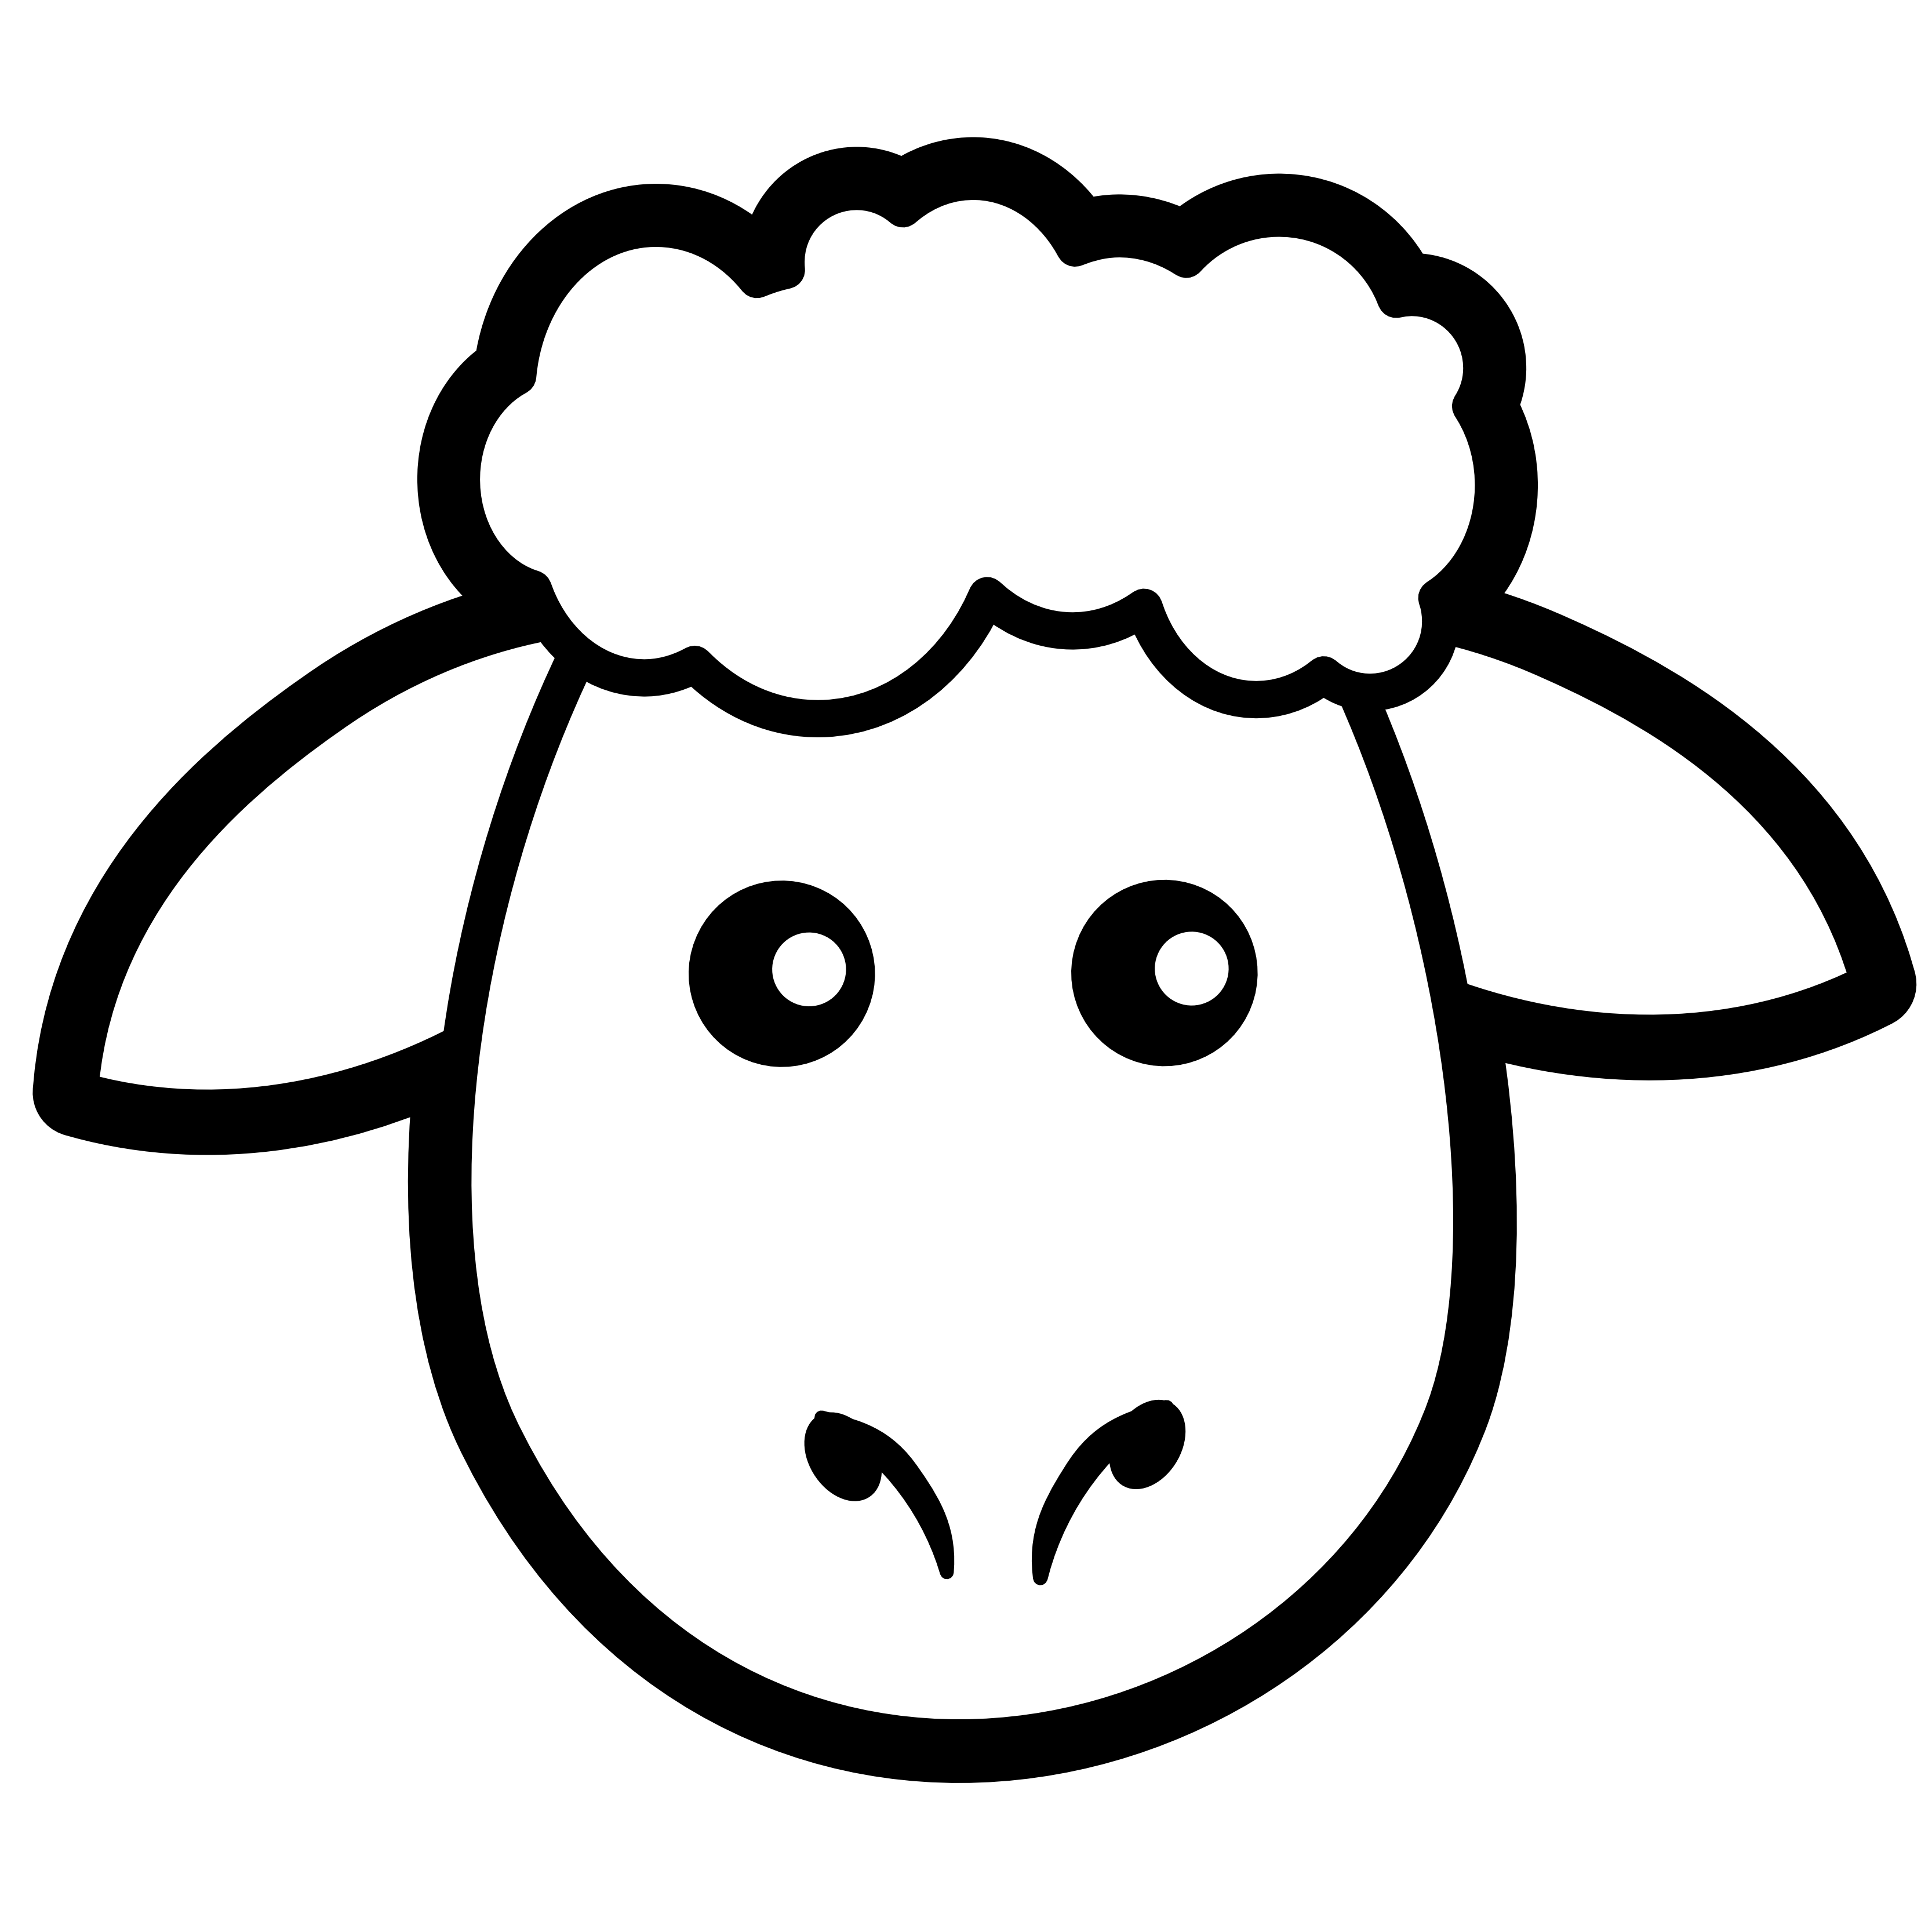 Cow Head Clipart Black And White | Free download best Cow Head ...